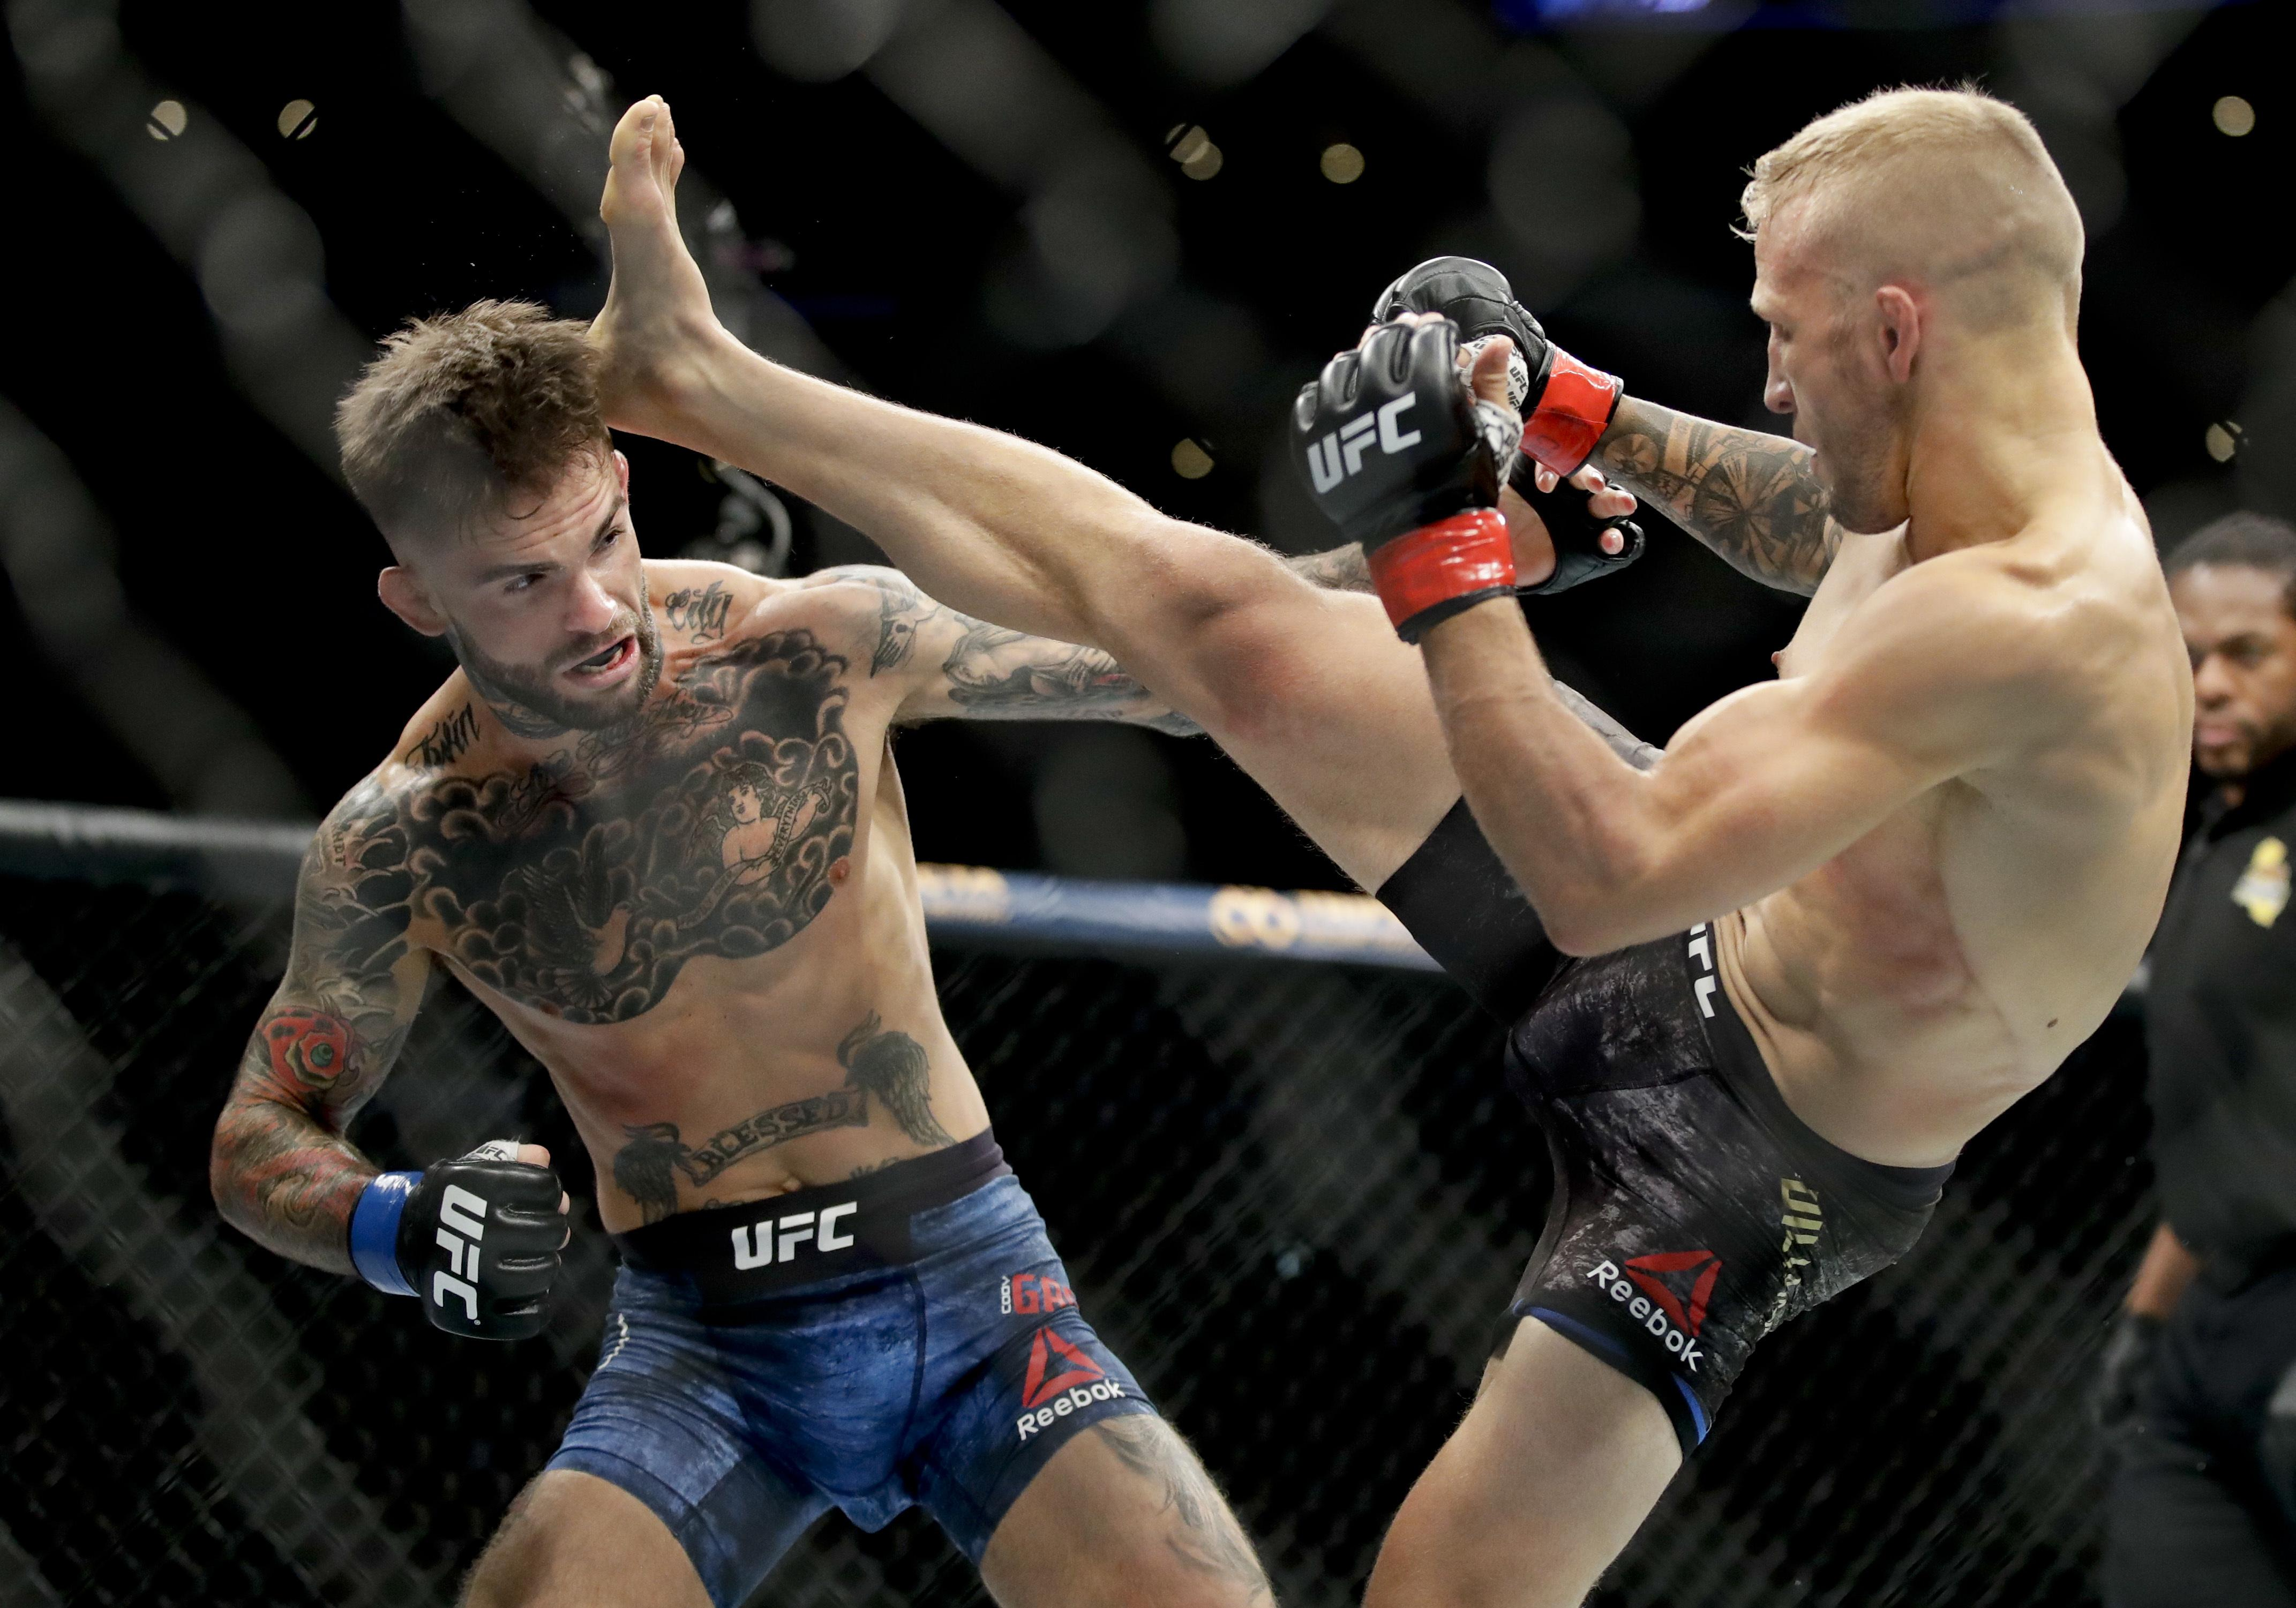 Two-time UFC champion Dillashaw needed just over four minutes to beat his former Team Alpha Male team-mate